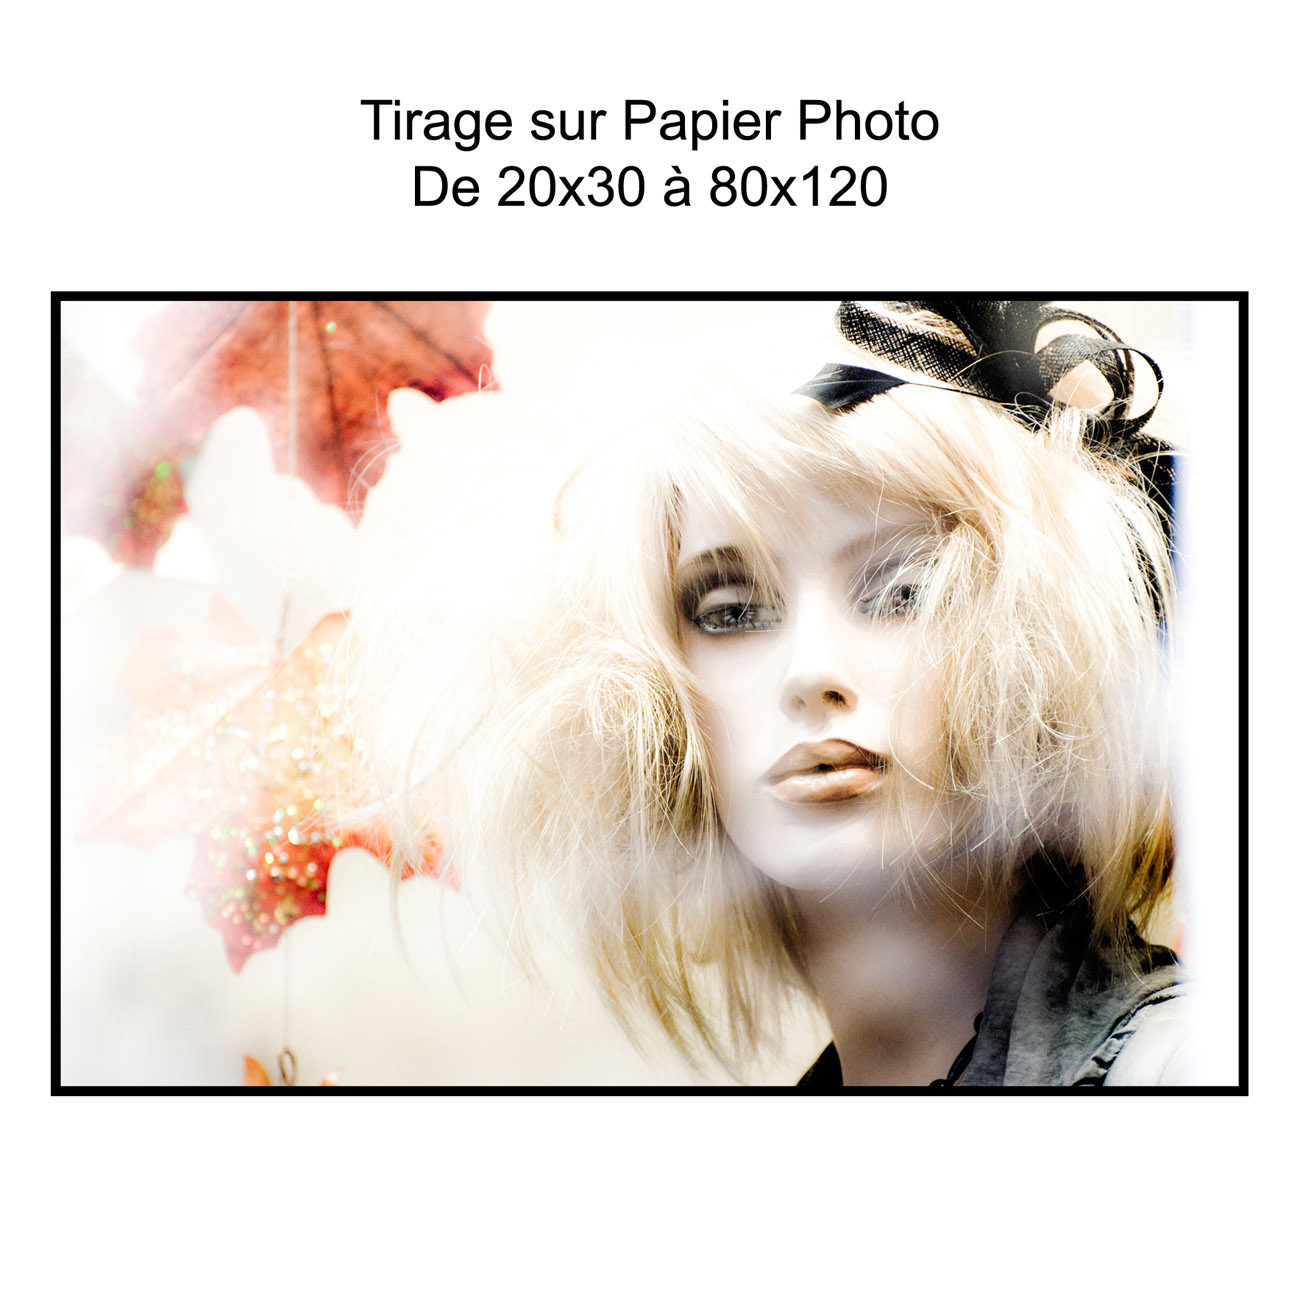 Tirage sur Papier photo